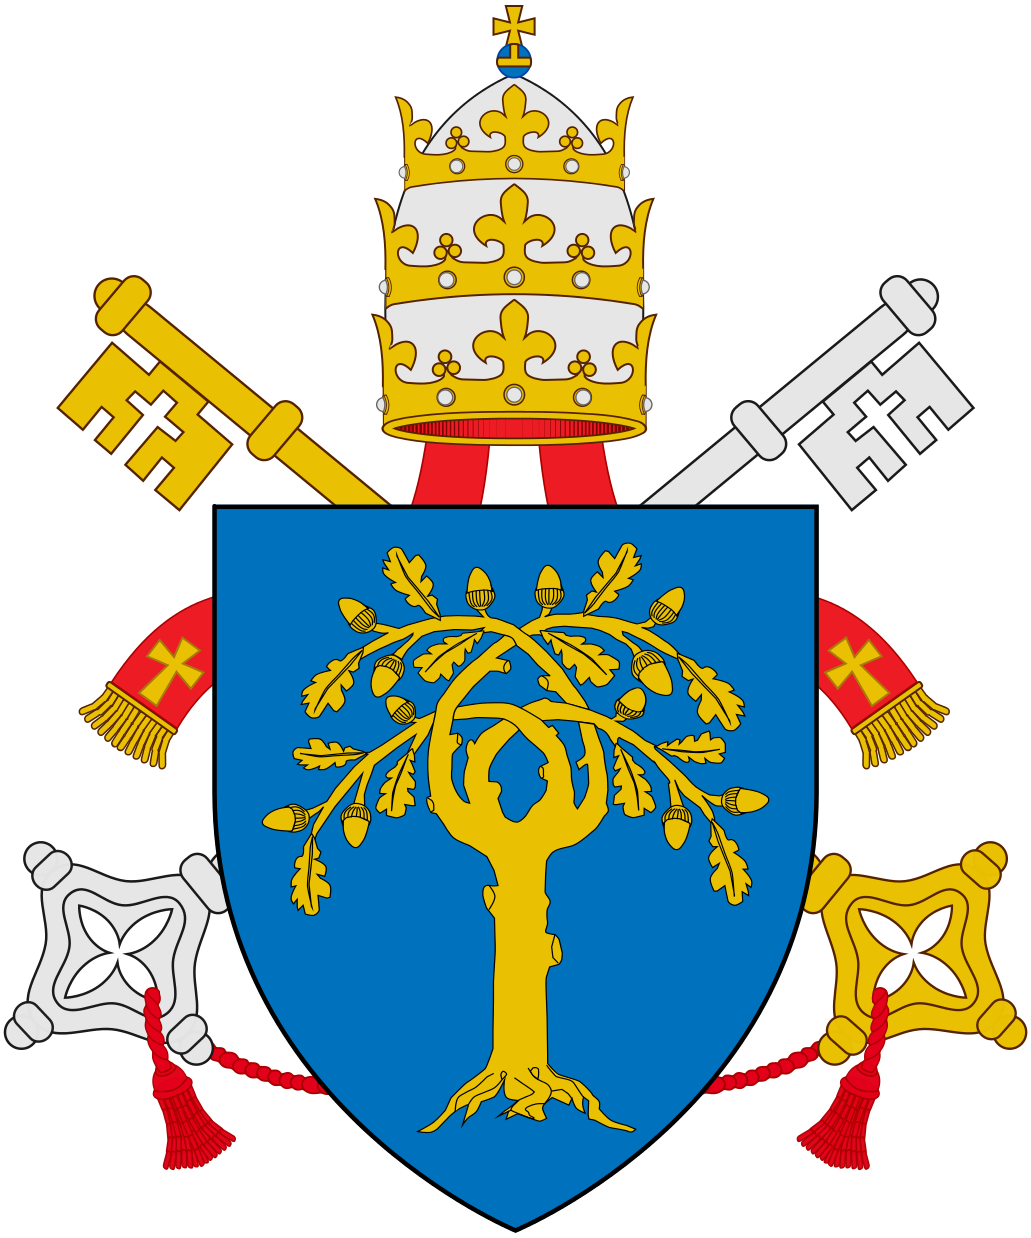 The della Rovere coat of arms, used by Sixtus IV (Francesco della Rovere, r. 1471–1484) and by his nephew Julius II (Giuliano della Rovere, r. 1503-1513), azure, an oak tree eradicated or, its four branches interlaced in saltire